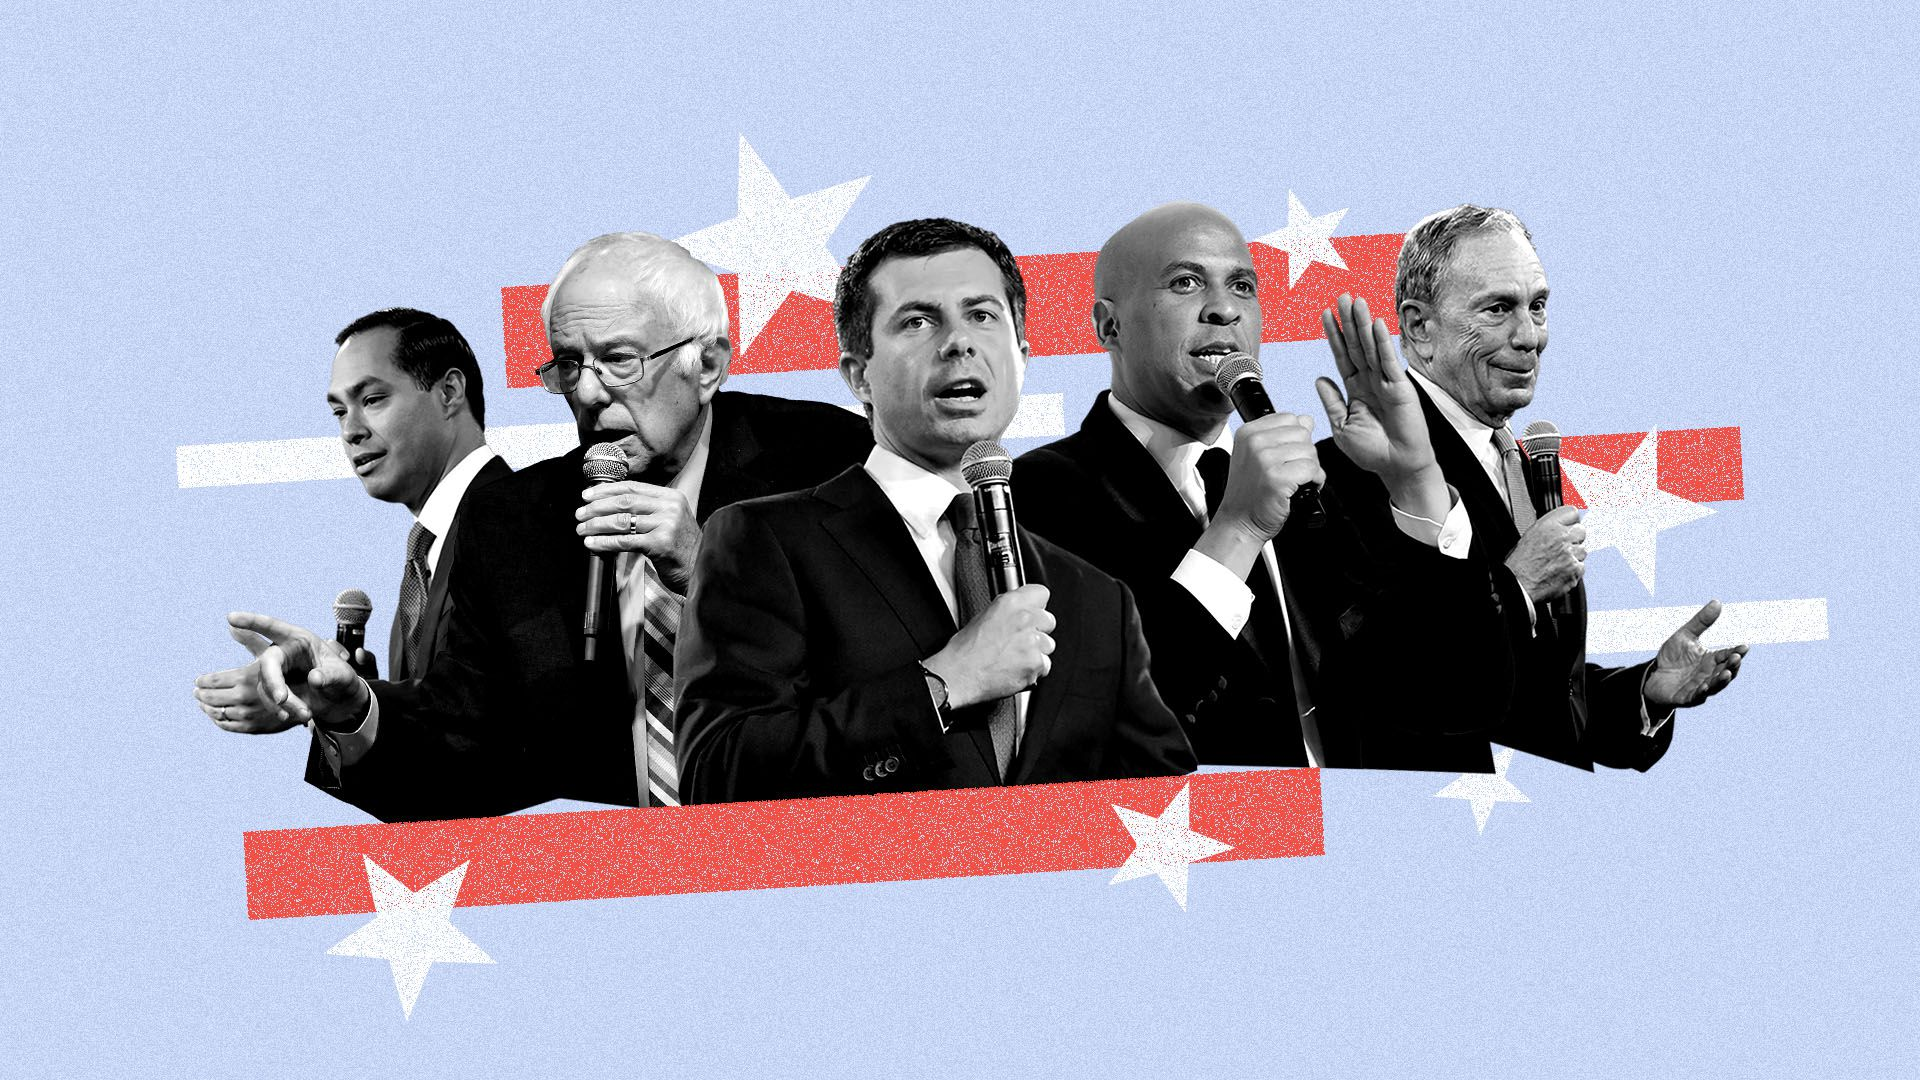 Photo illustration of mayors Julian Castro, Bernie Sanders, Pete Buttigieg, Cory Booker, and Michael Bloomberg with stars and stripes in the background